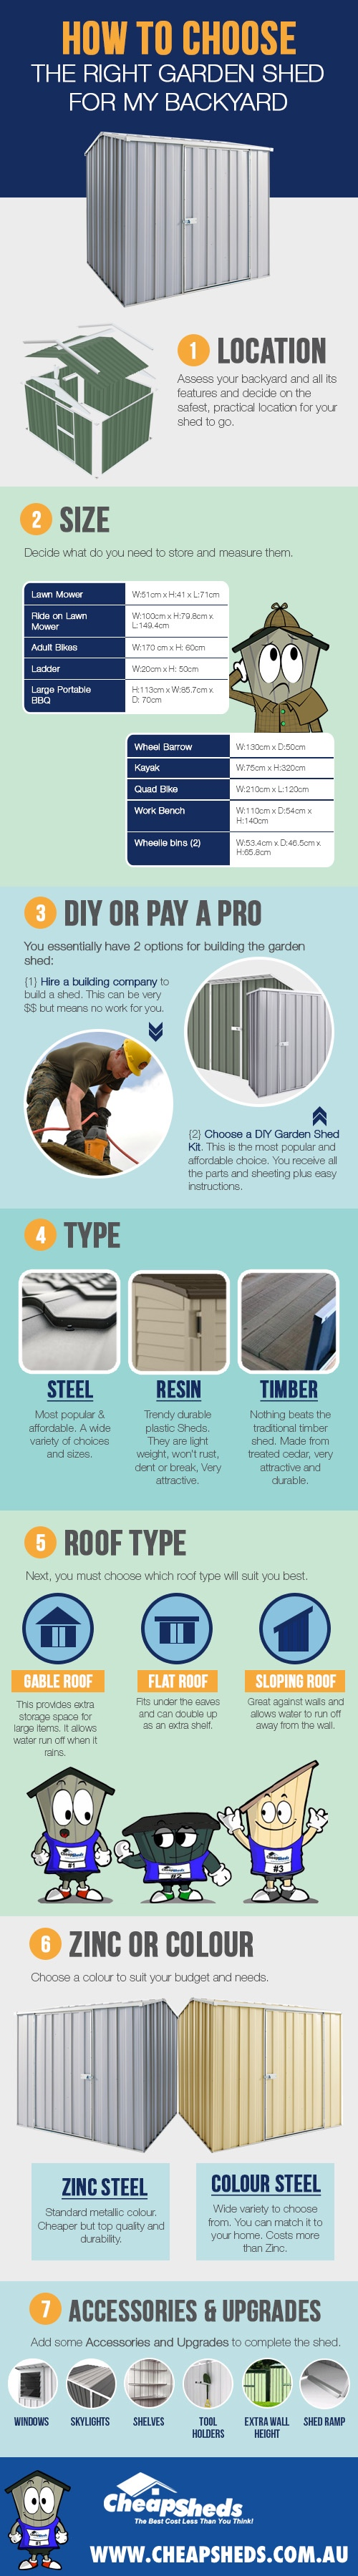 How to Choose a Garden Shed -infographic